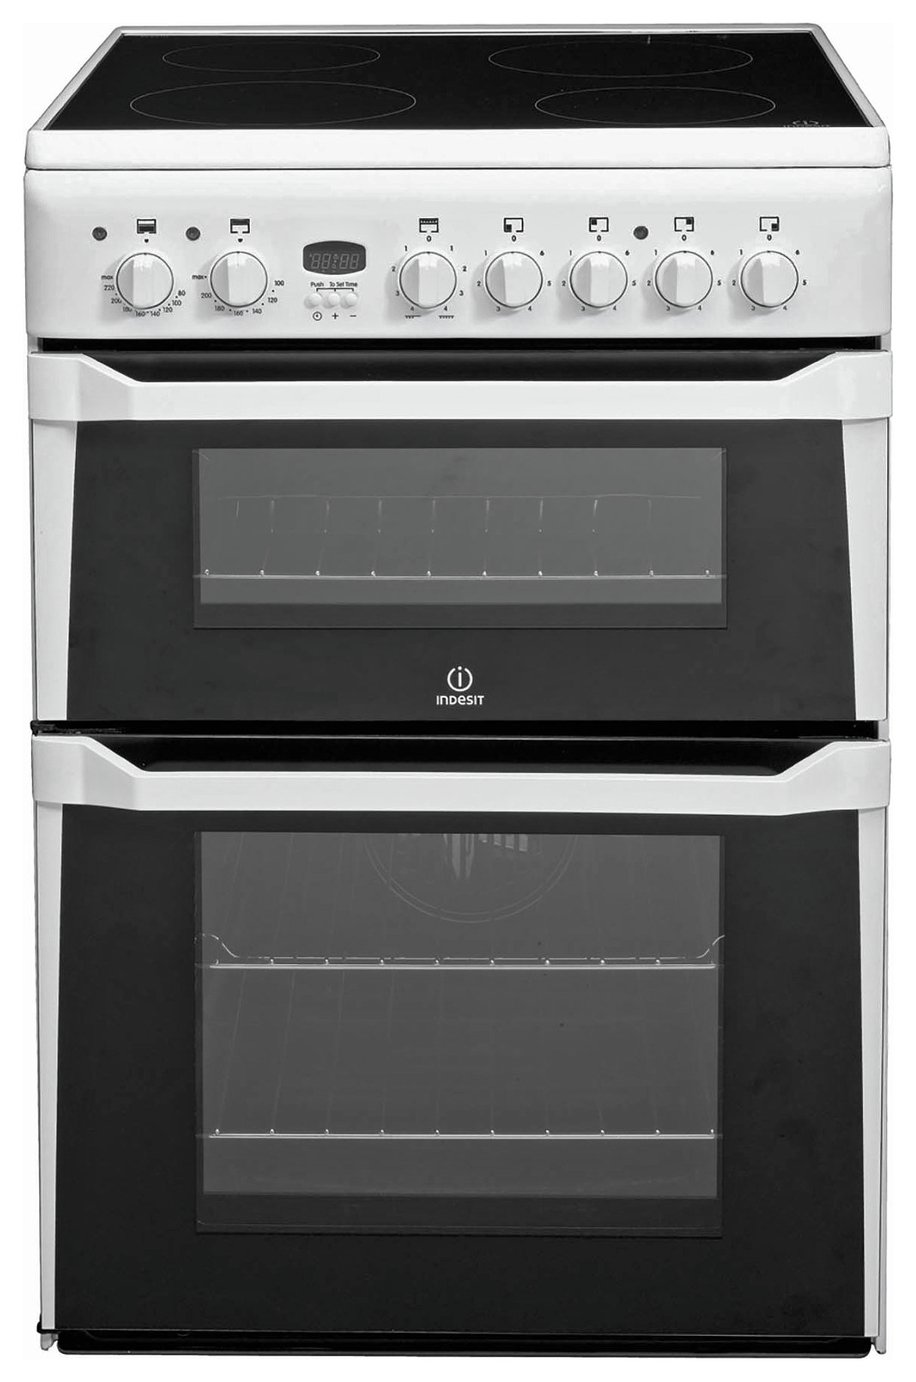 Indesit ID60C2 60cm Double Oven Electric Cooker - White Best Price, Cheapest Prices